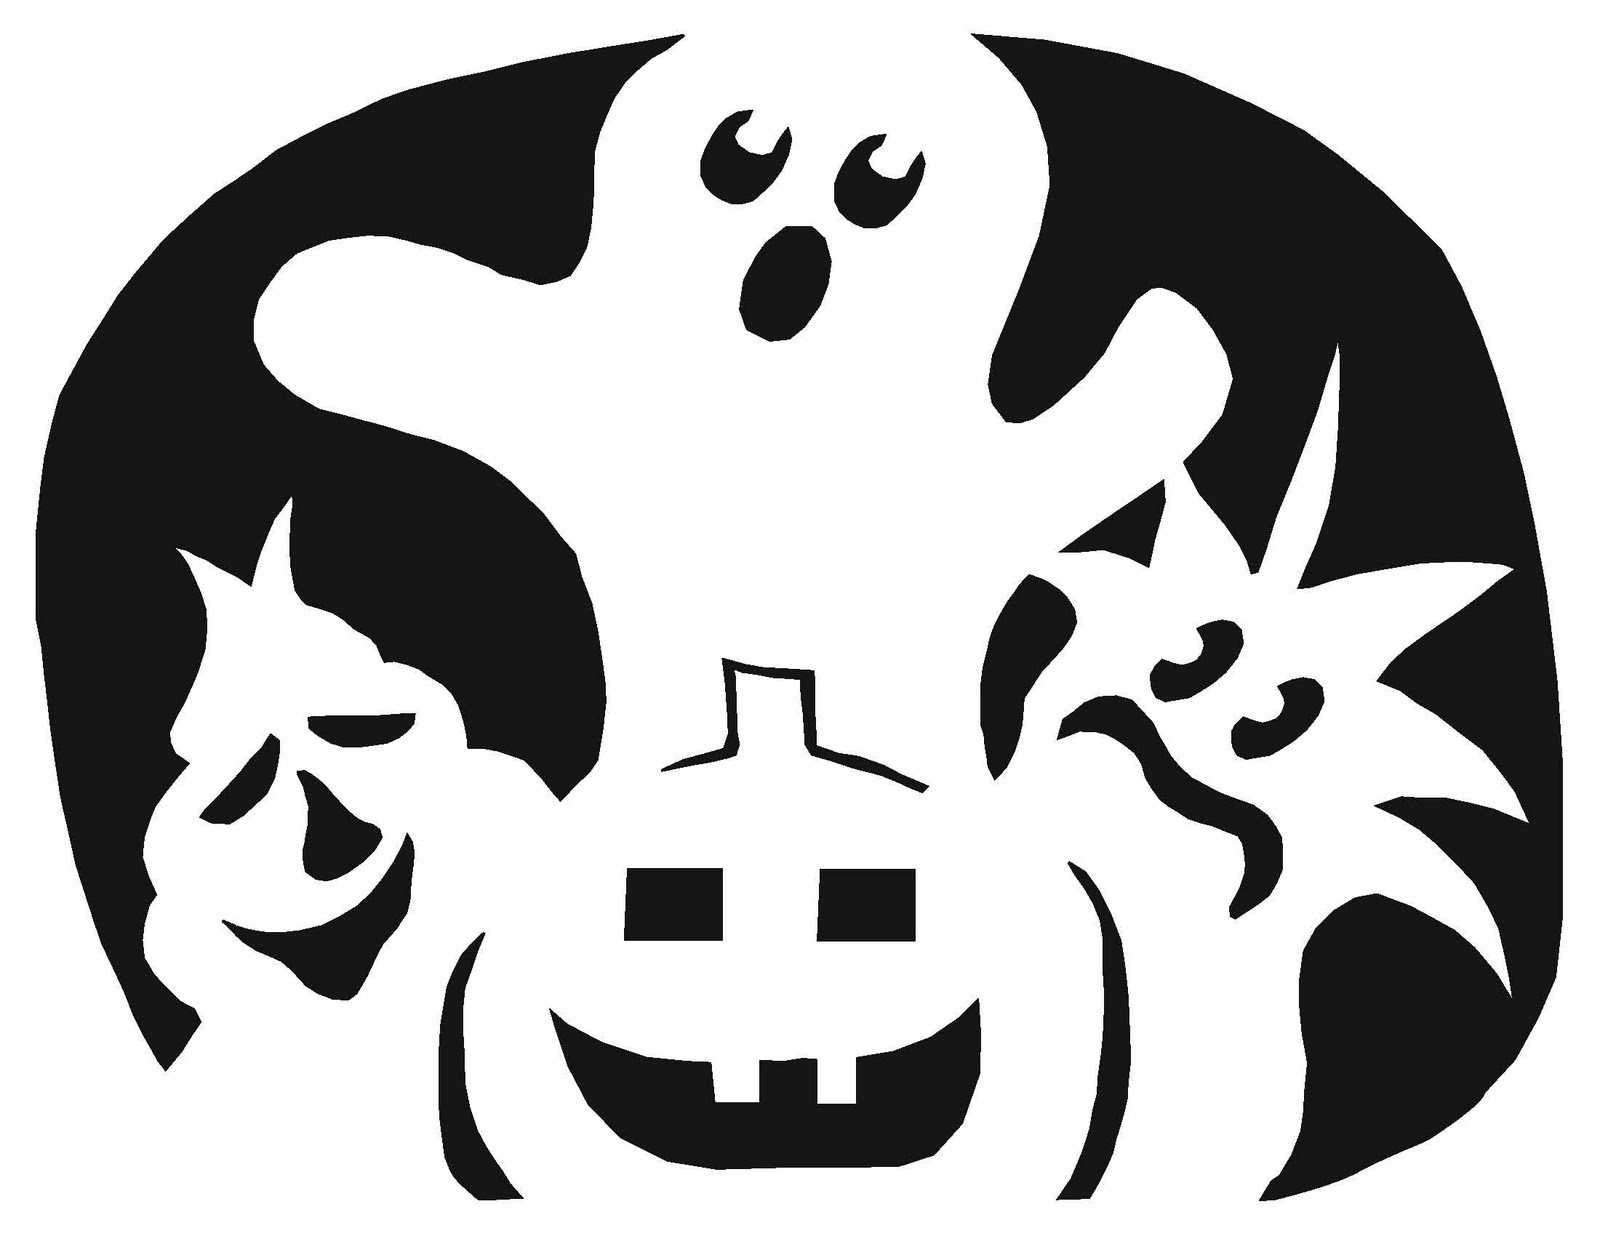 small halloween pumpkin templates - pumpkin carving templates